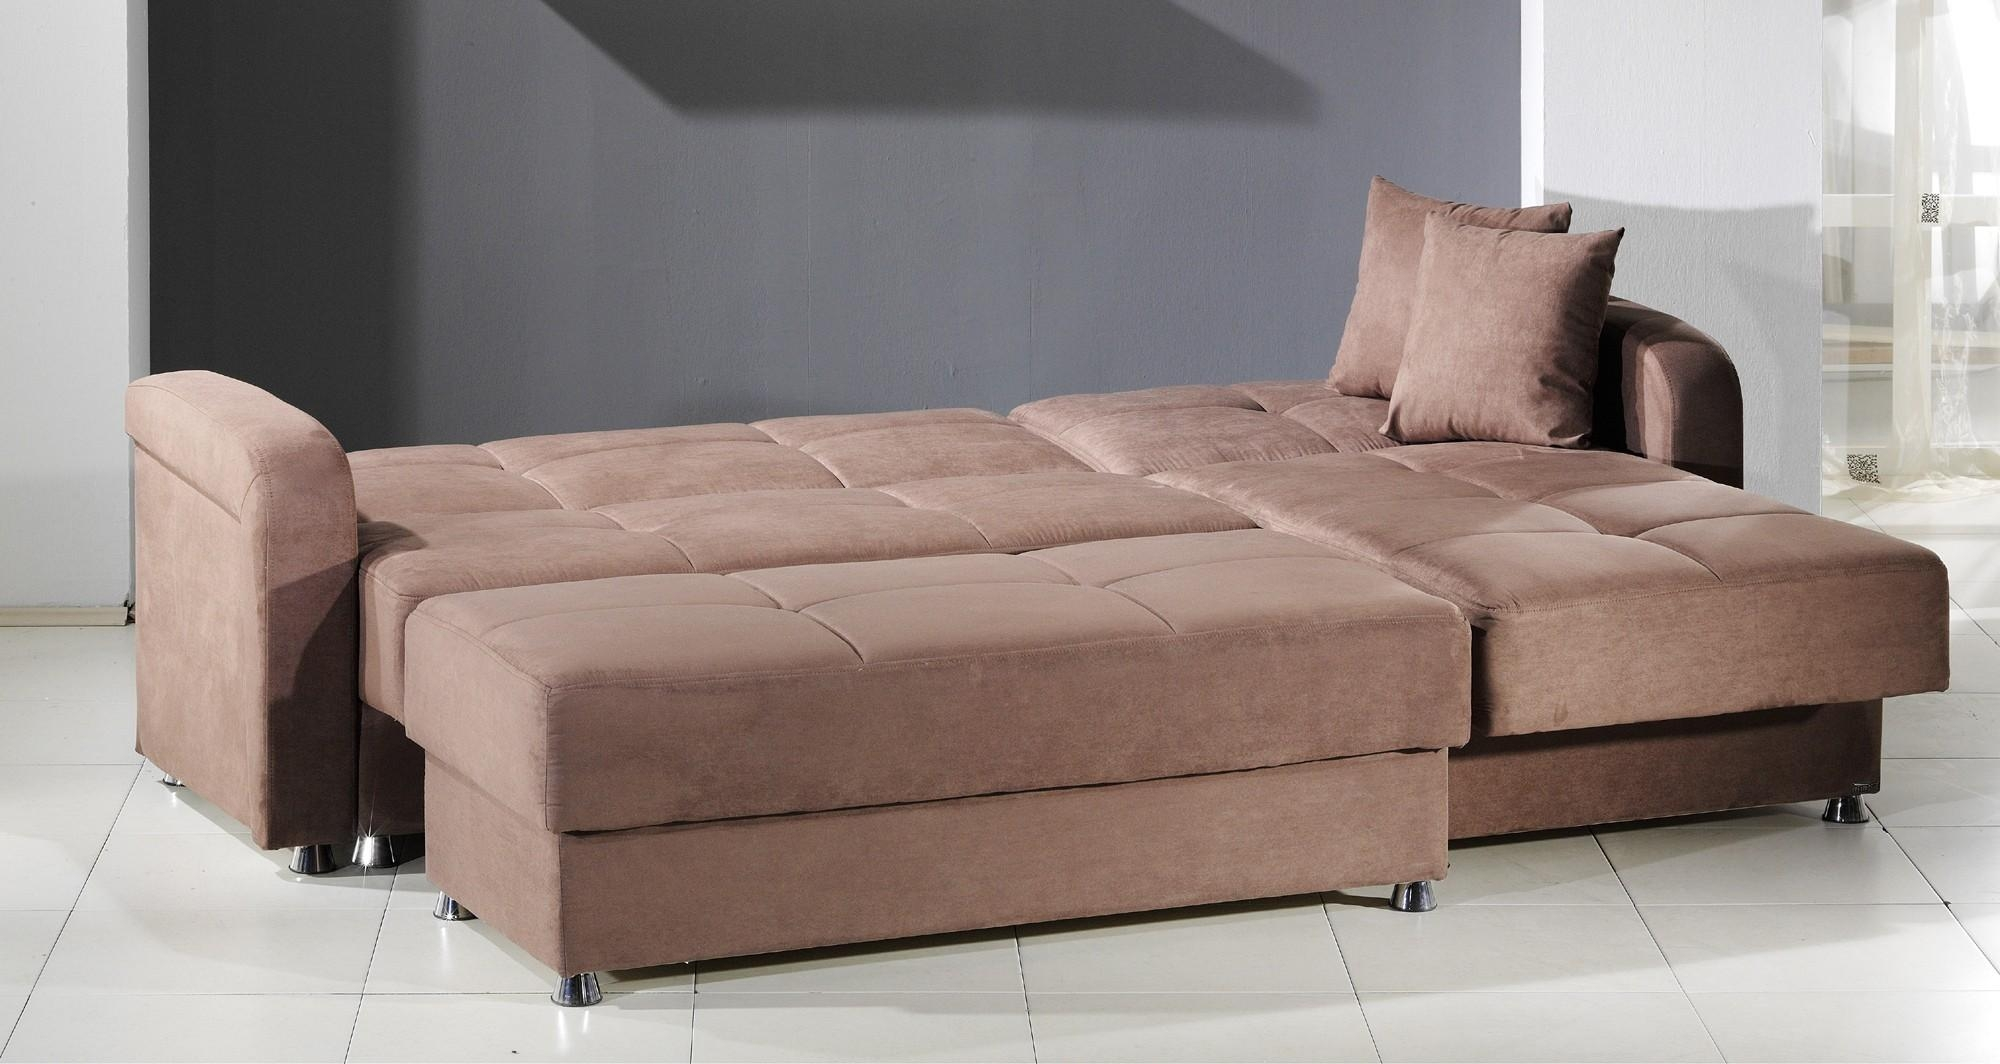 Wonderful Sleeper Sectional Sofa With Chaise Latest Cheap Within Sectional Sleeper Sofas With Chaise (View 10 of 20)